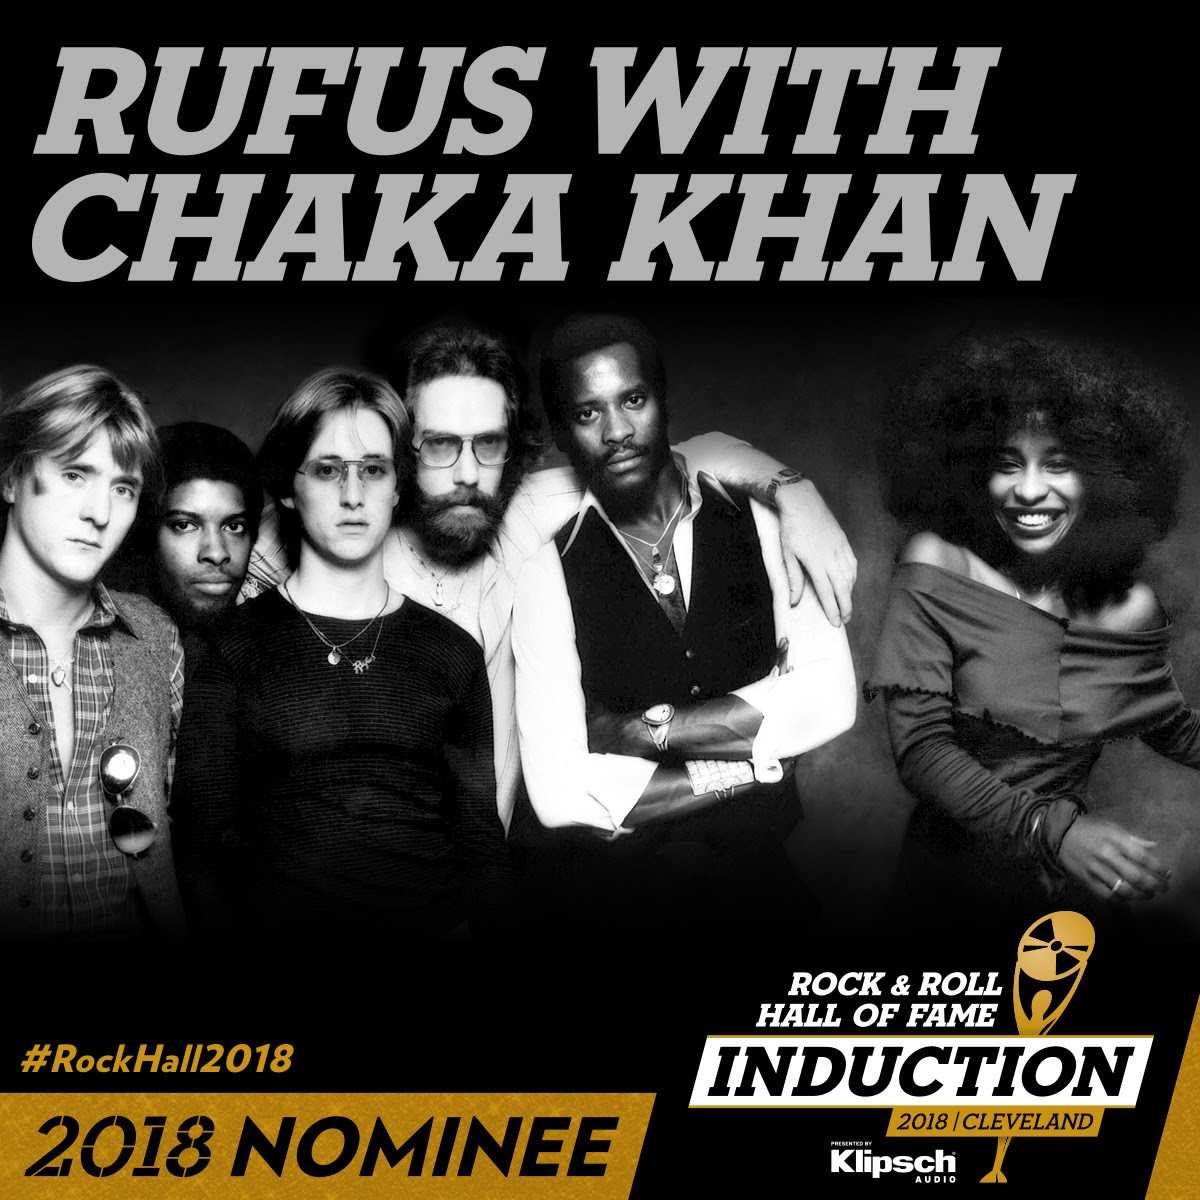 Chaka Khan Nominated for The Rock and Roll Hall of Fame 2018